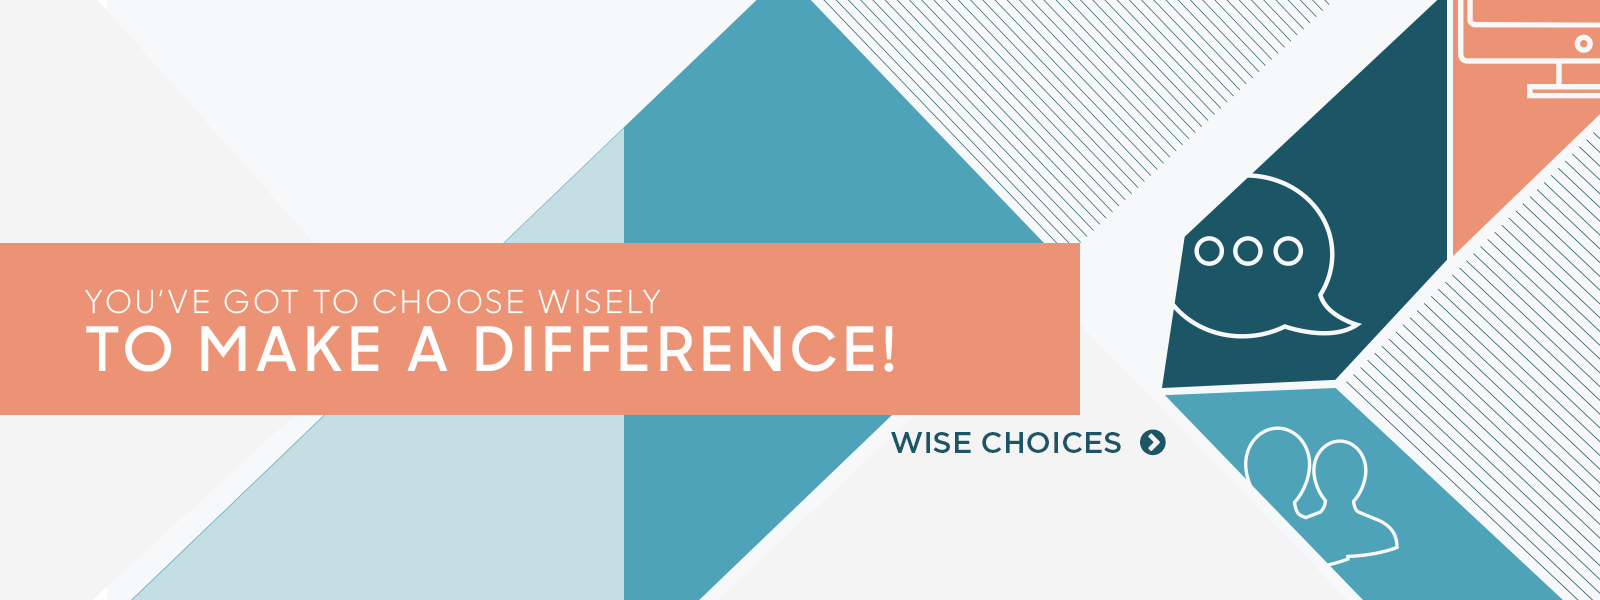 JFM-Homepage-WiseChoices